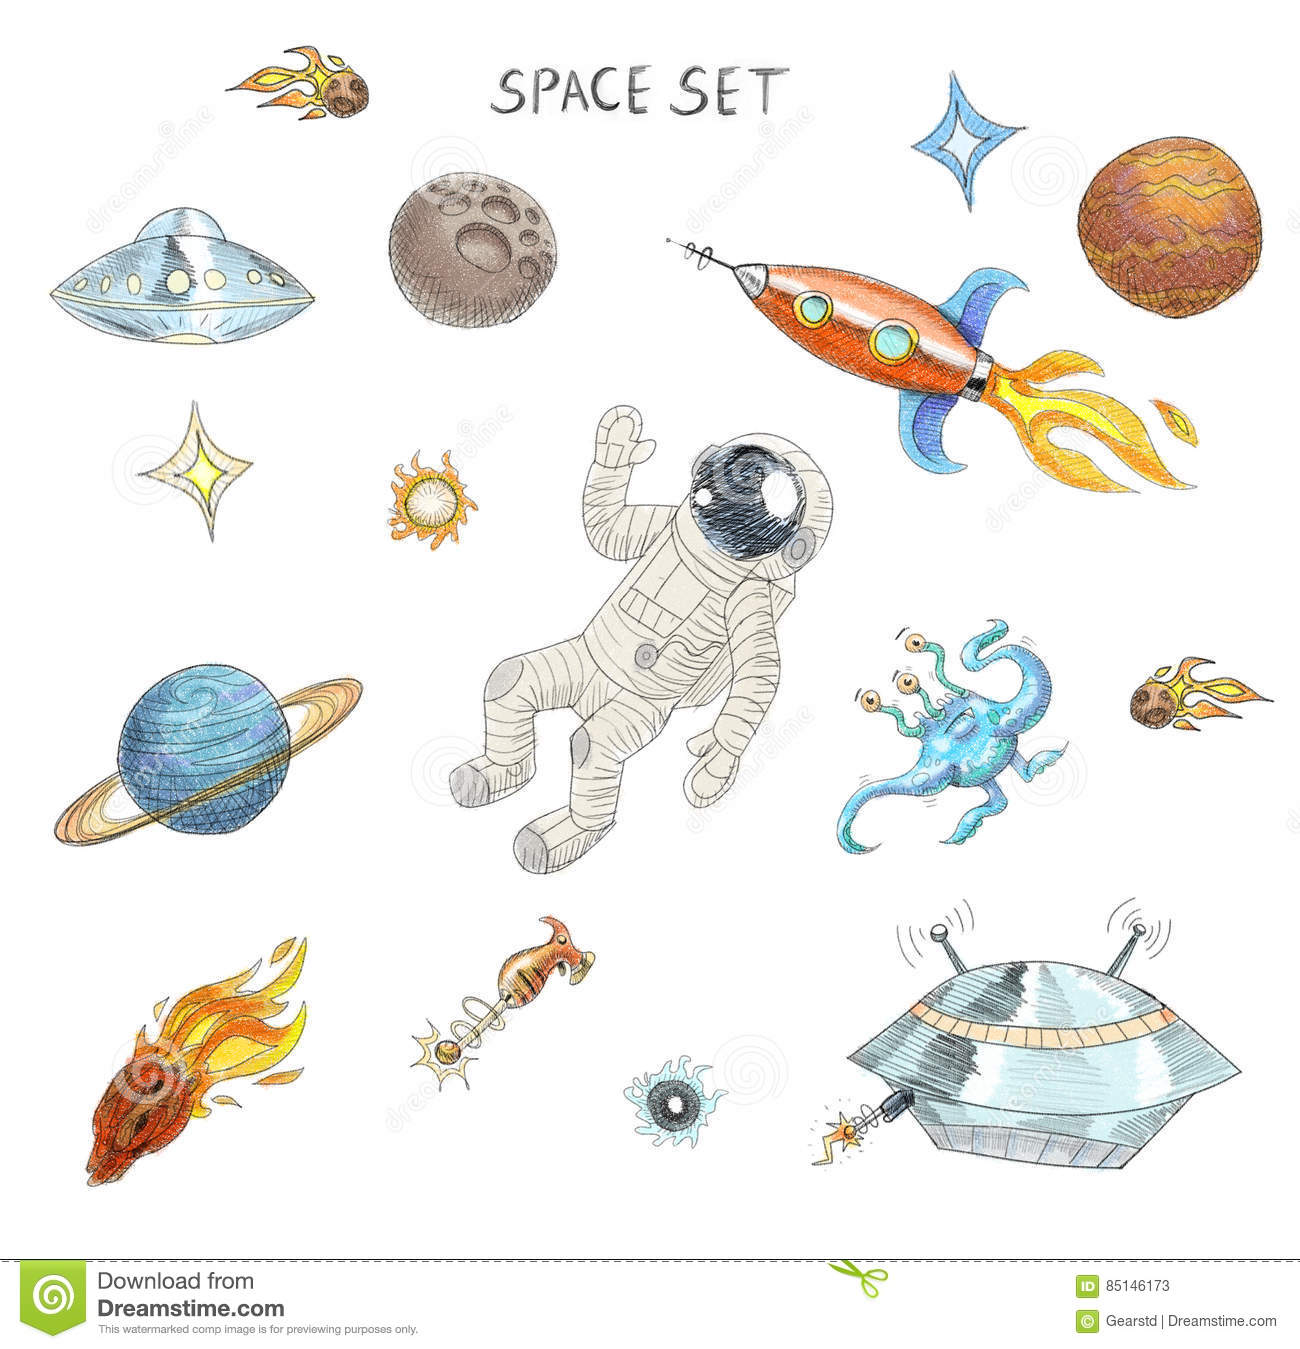 how to draw a alien spaceship